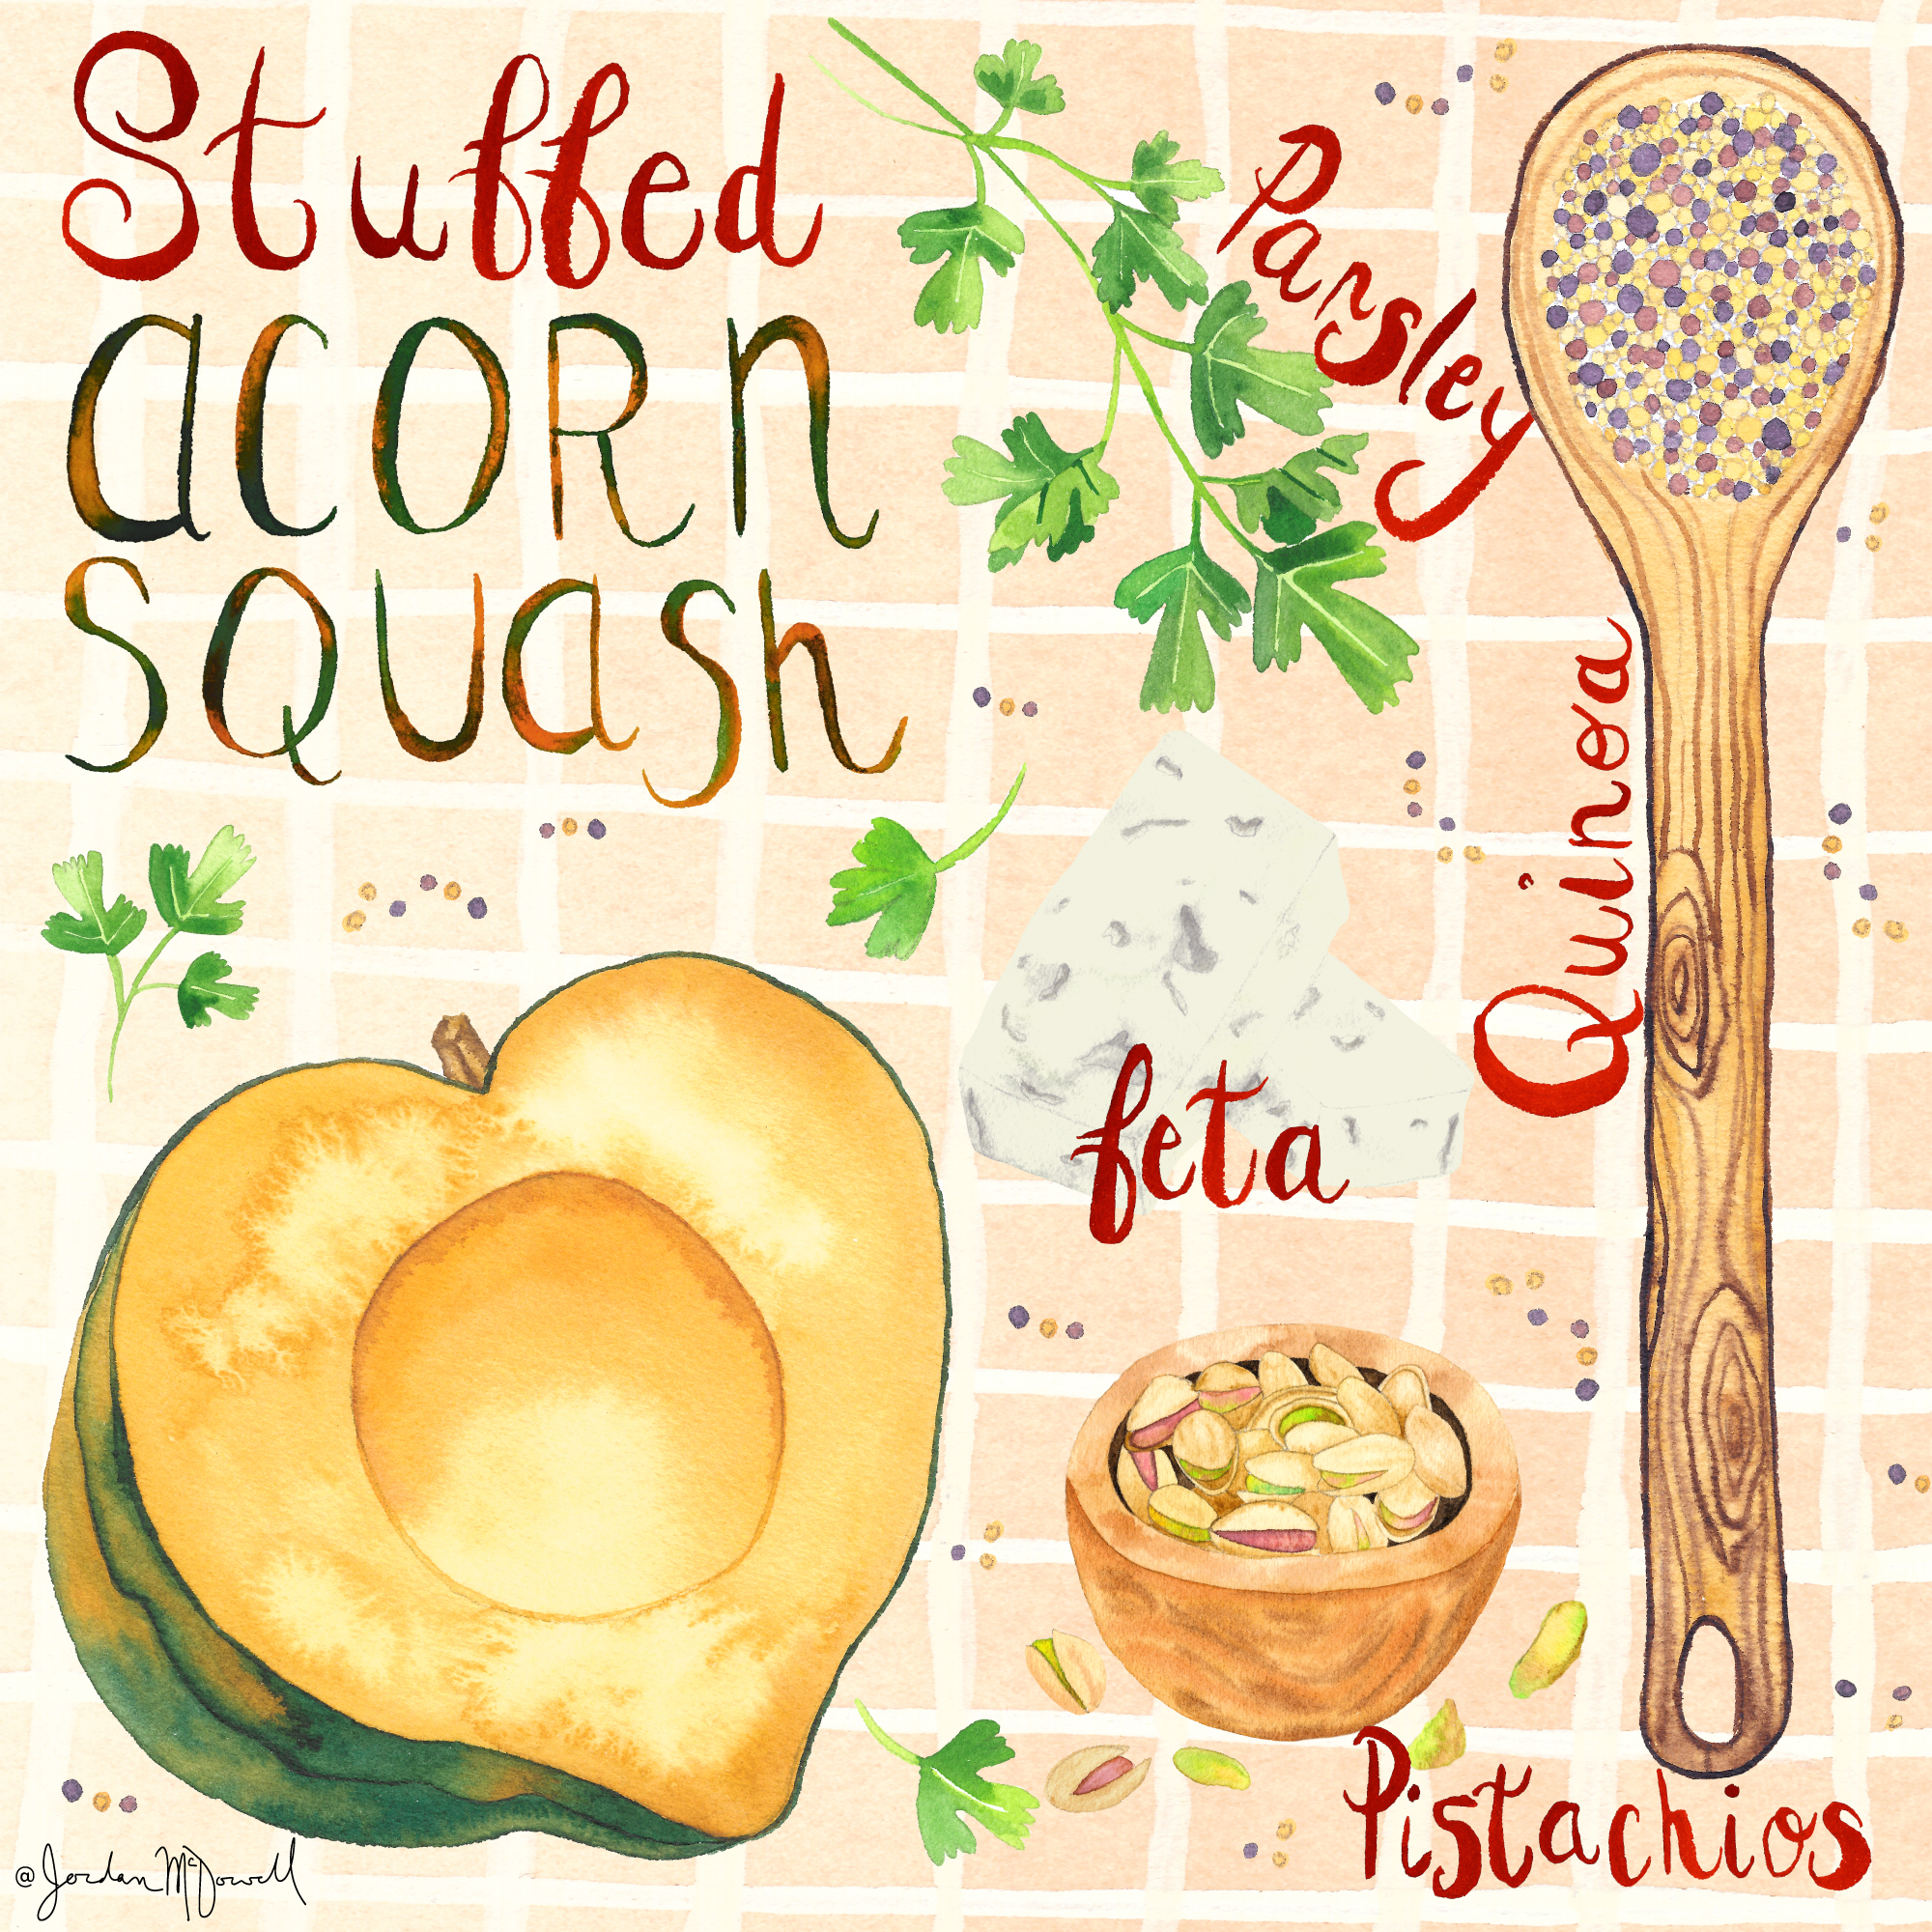 Jordan-McDowell-Stuffed-Acorn-Squash-Illustration.jpg